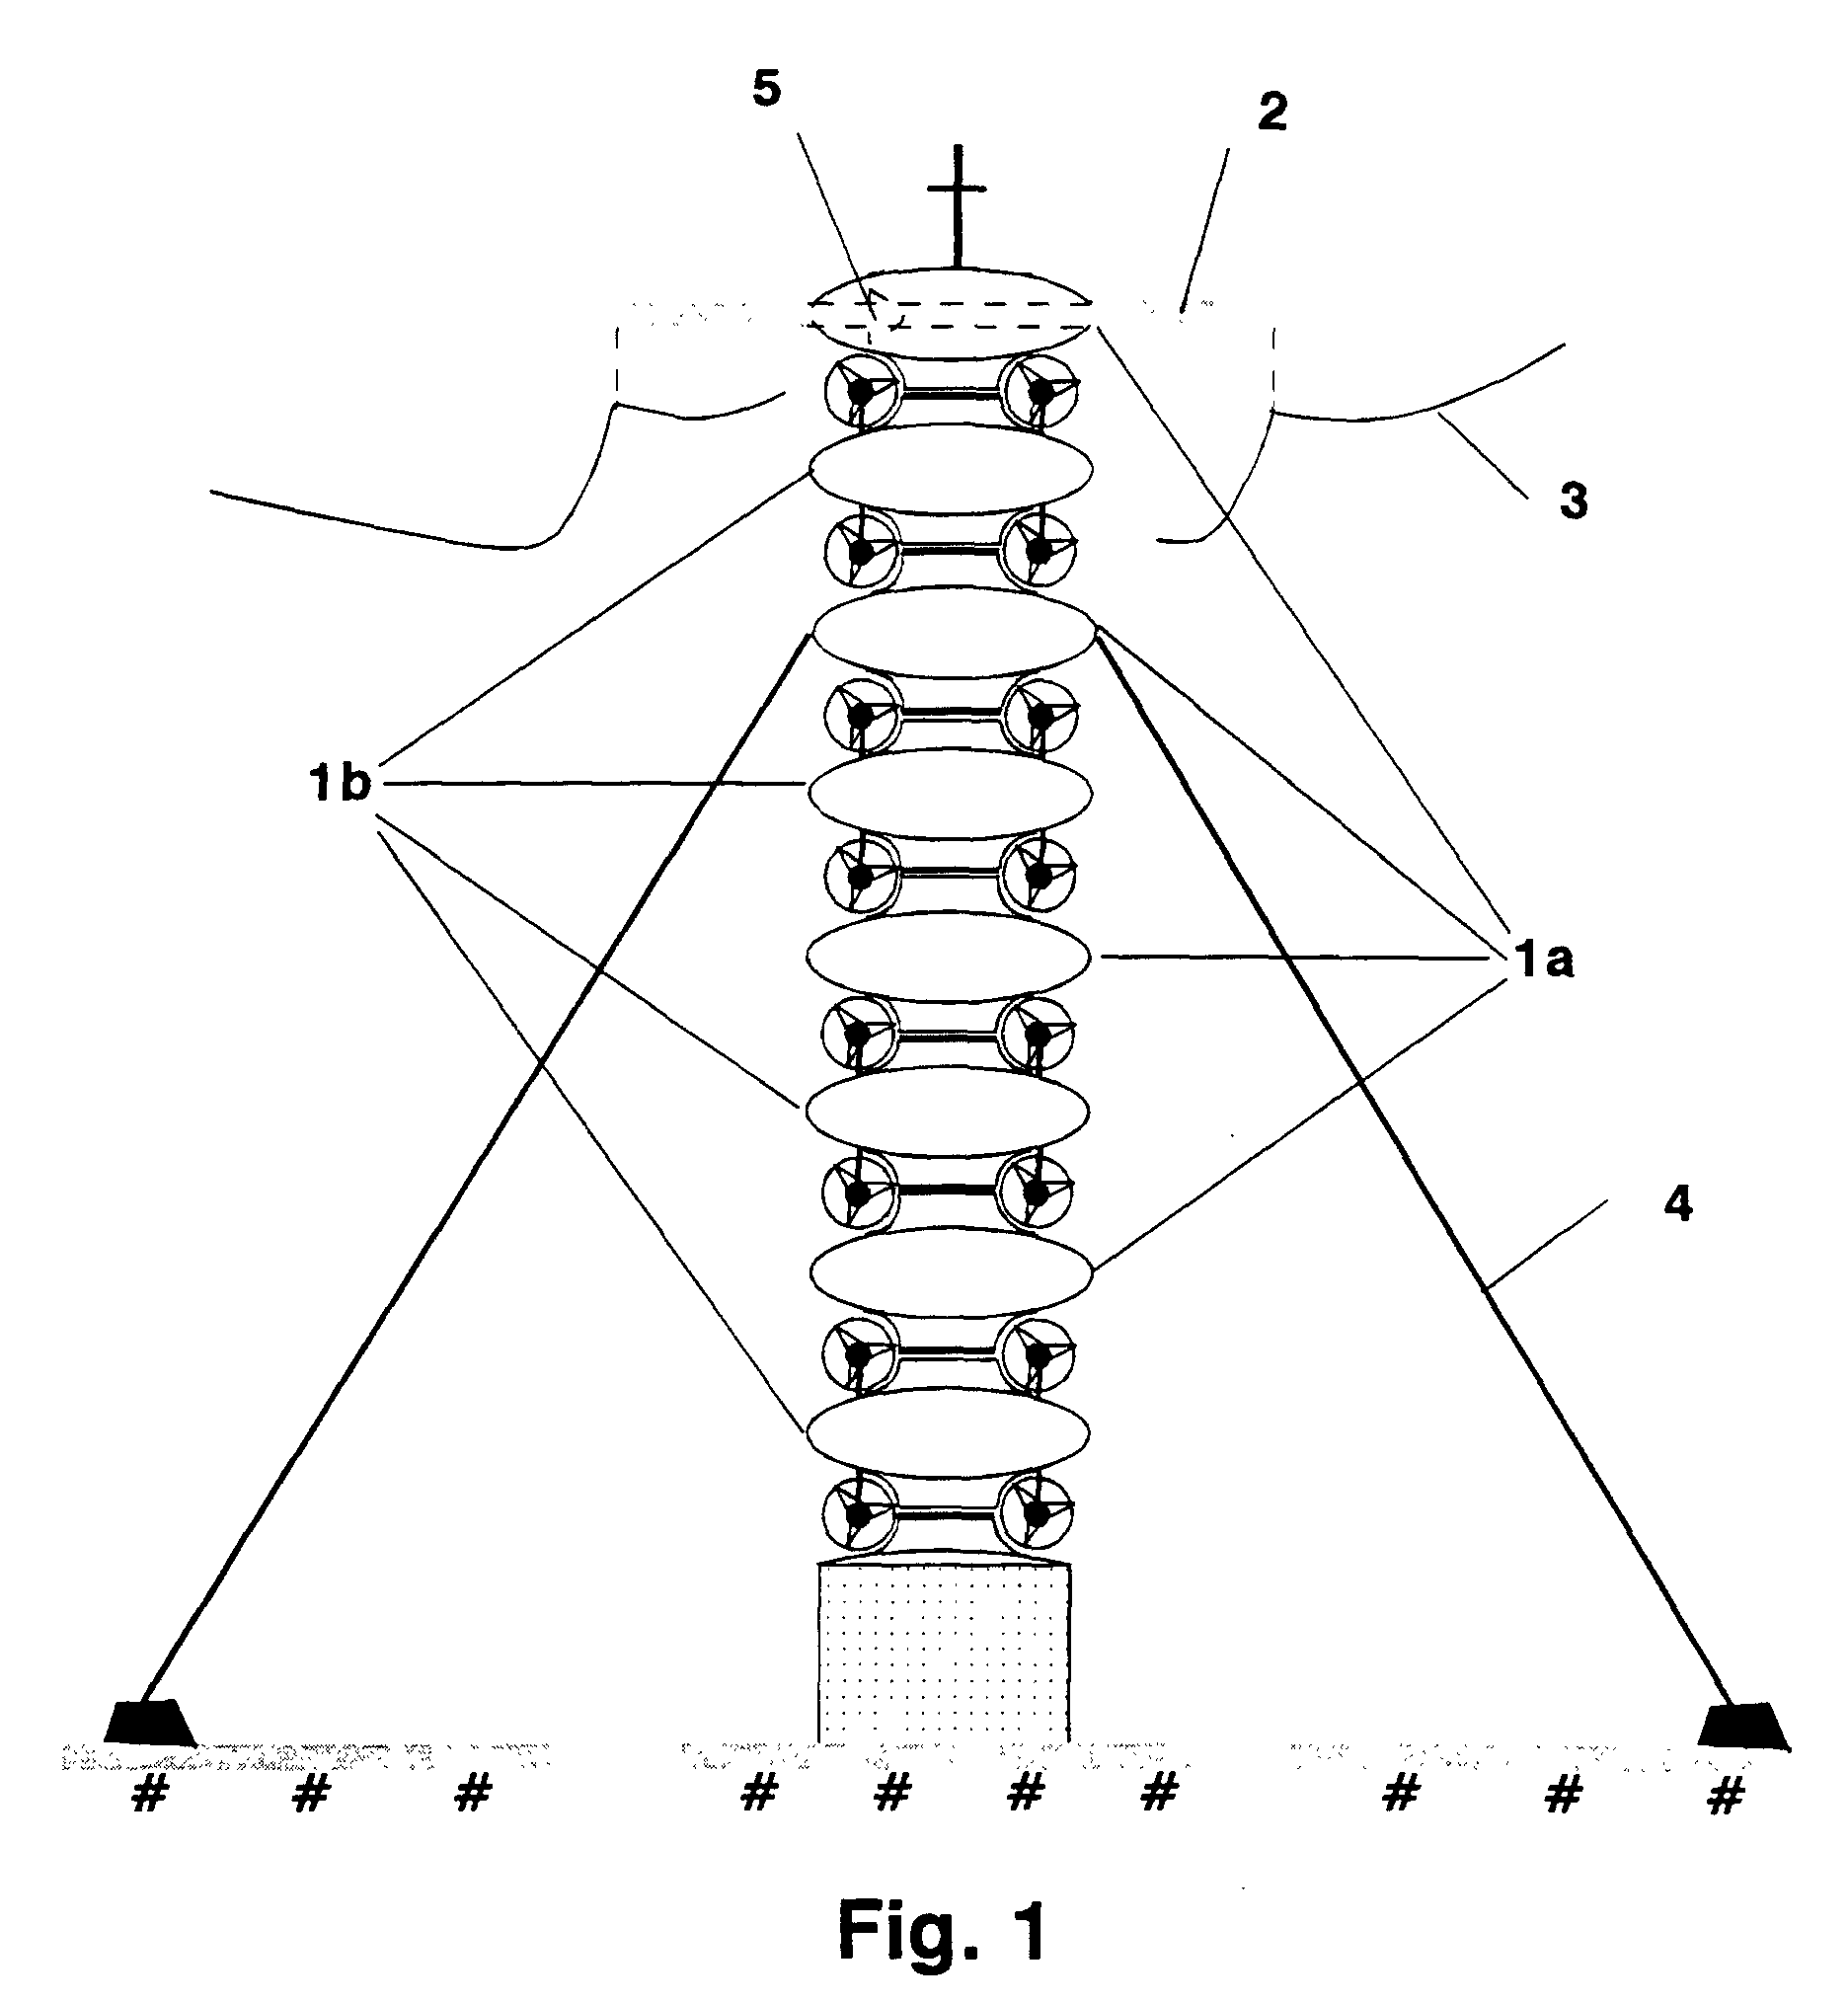 patent ep0784751b1 - wind amplified rotor platform systems